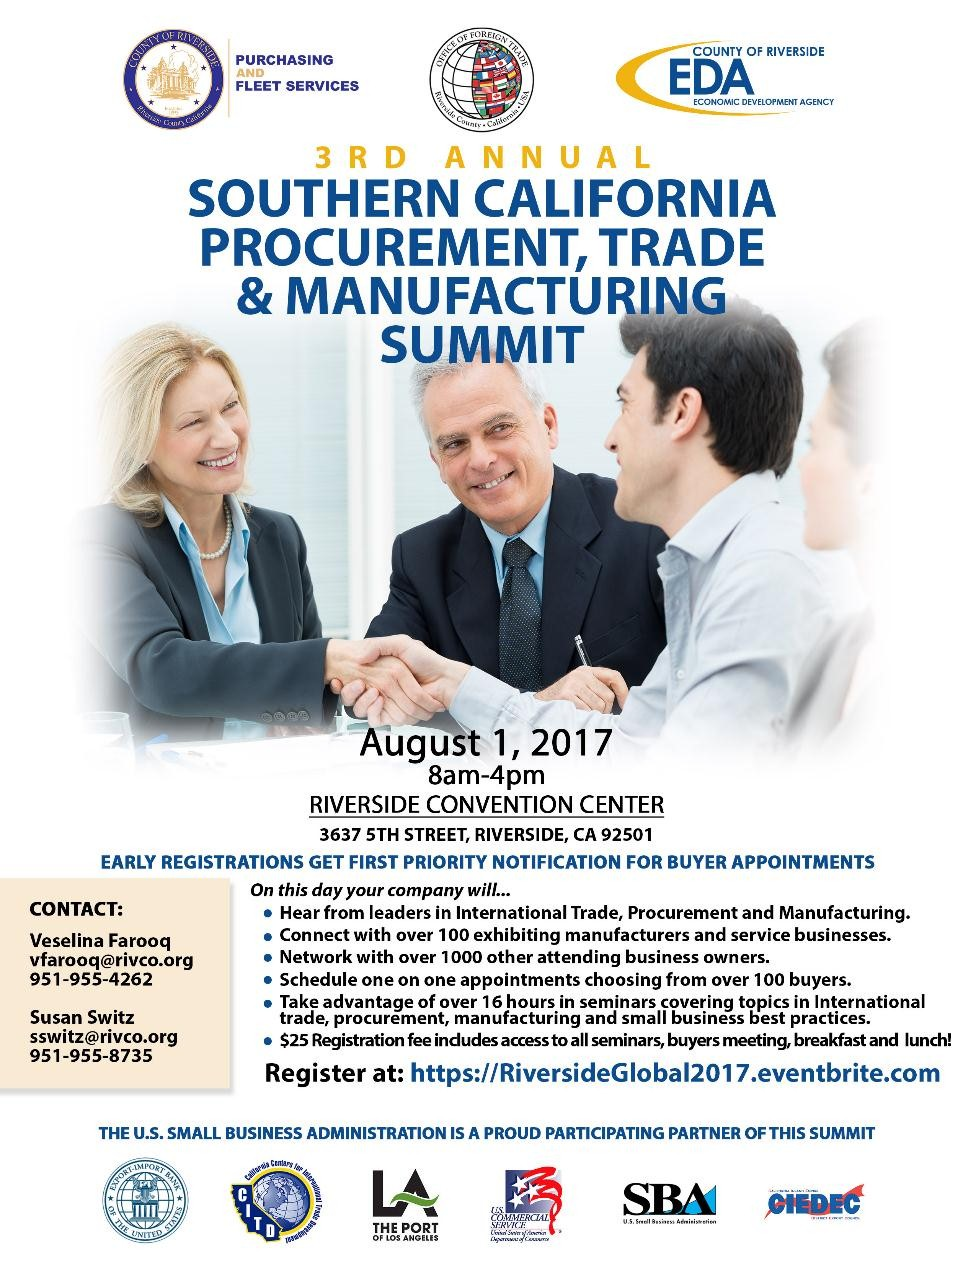 3rd Annual Southern California Procurement, Trade & Manufacturing Summit @ Riverside Convention Center